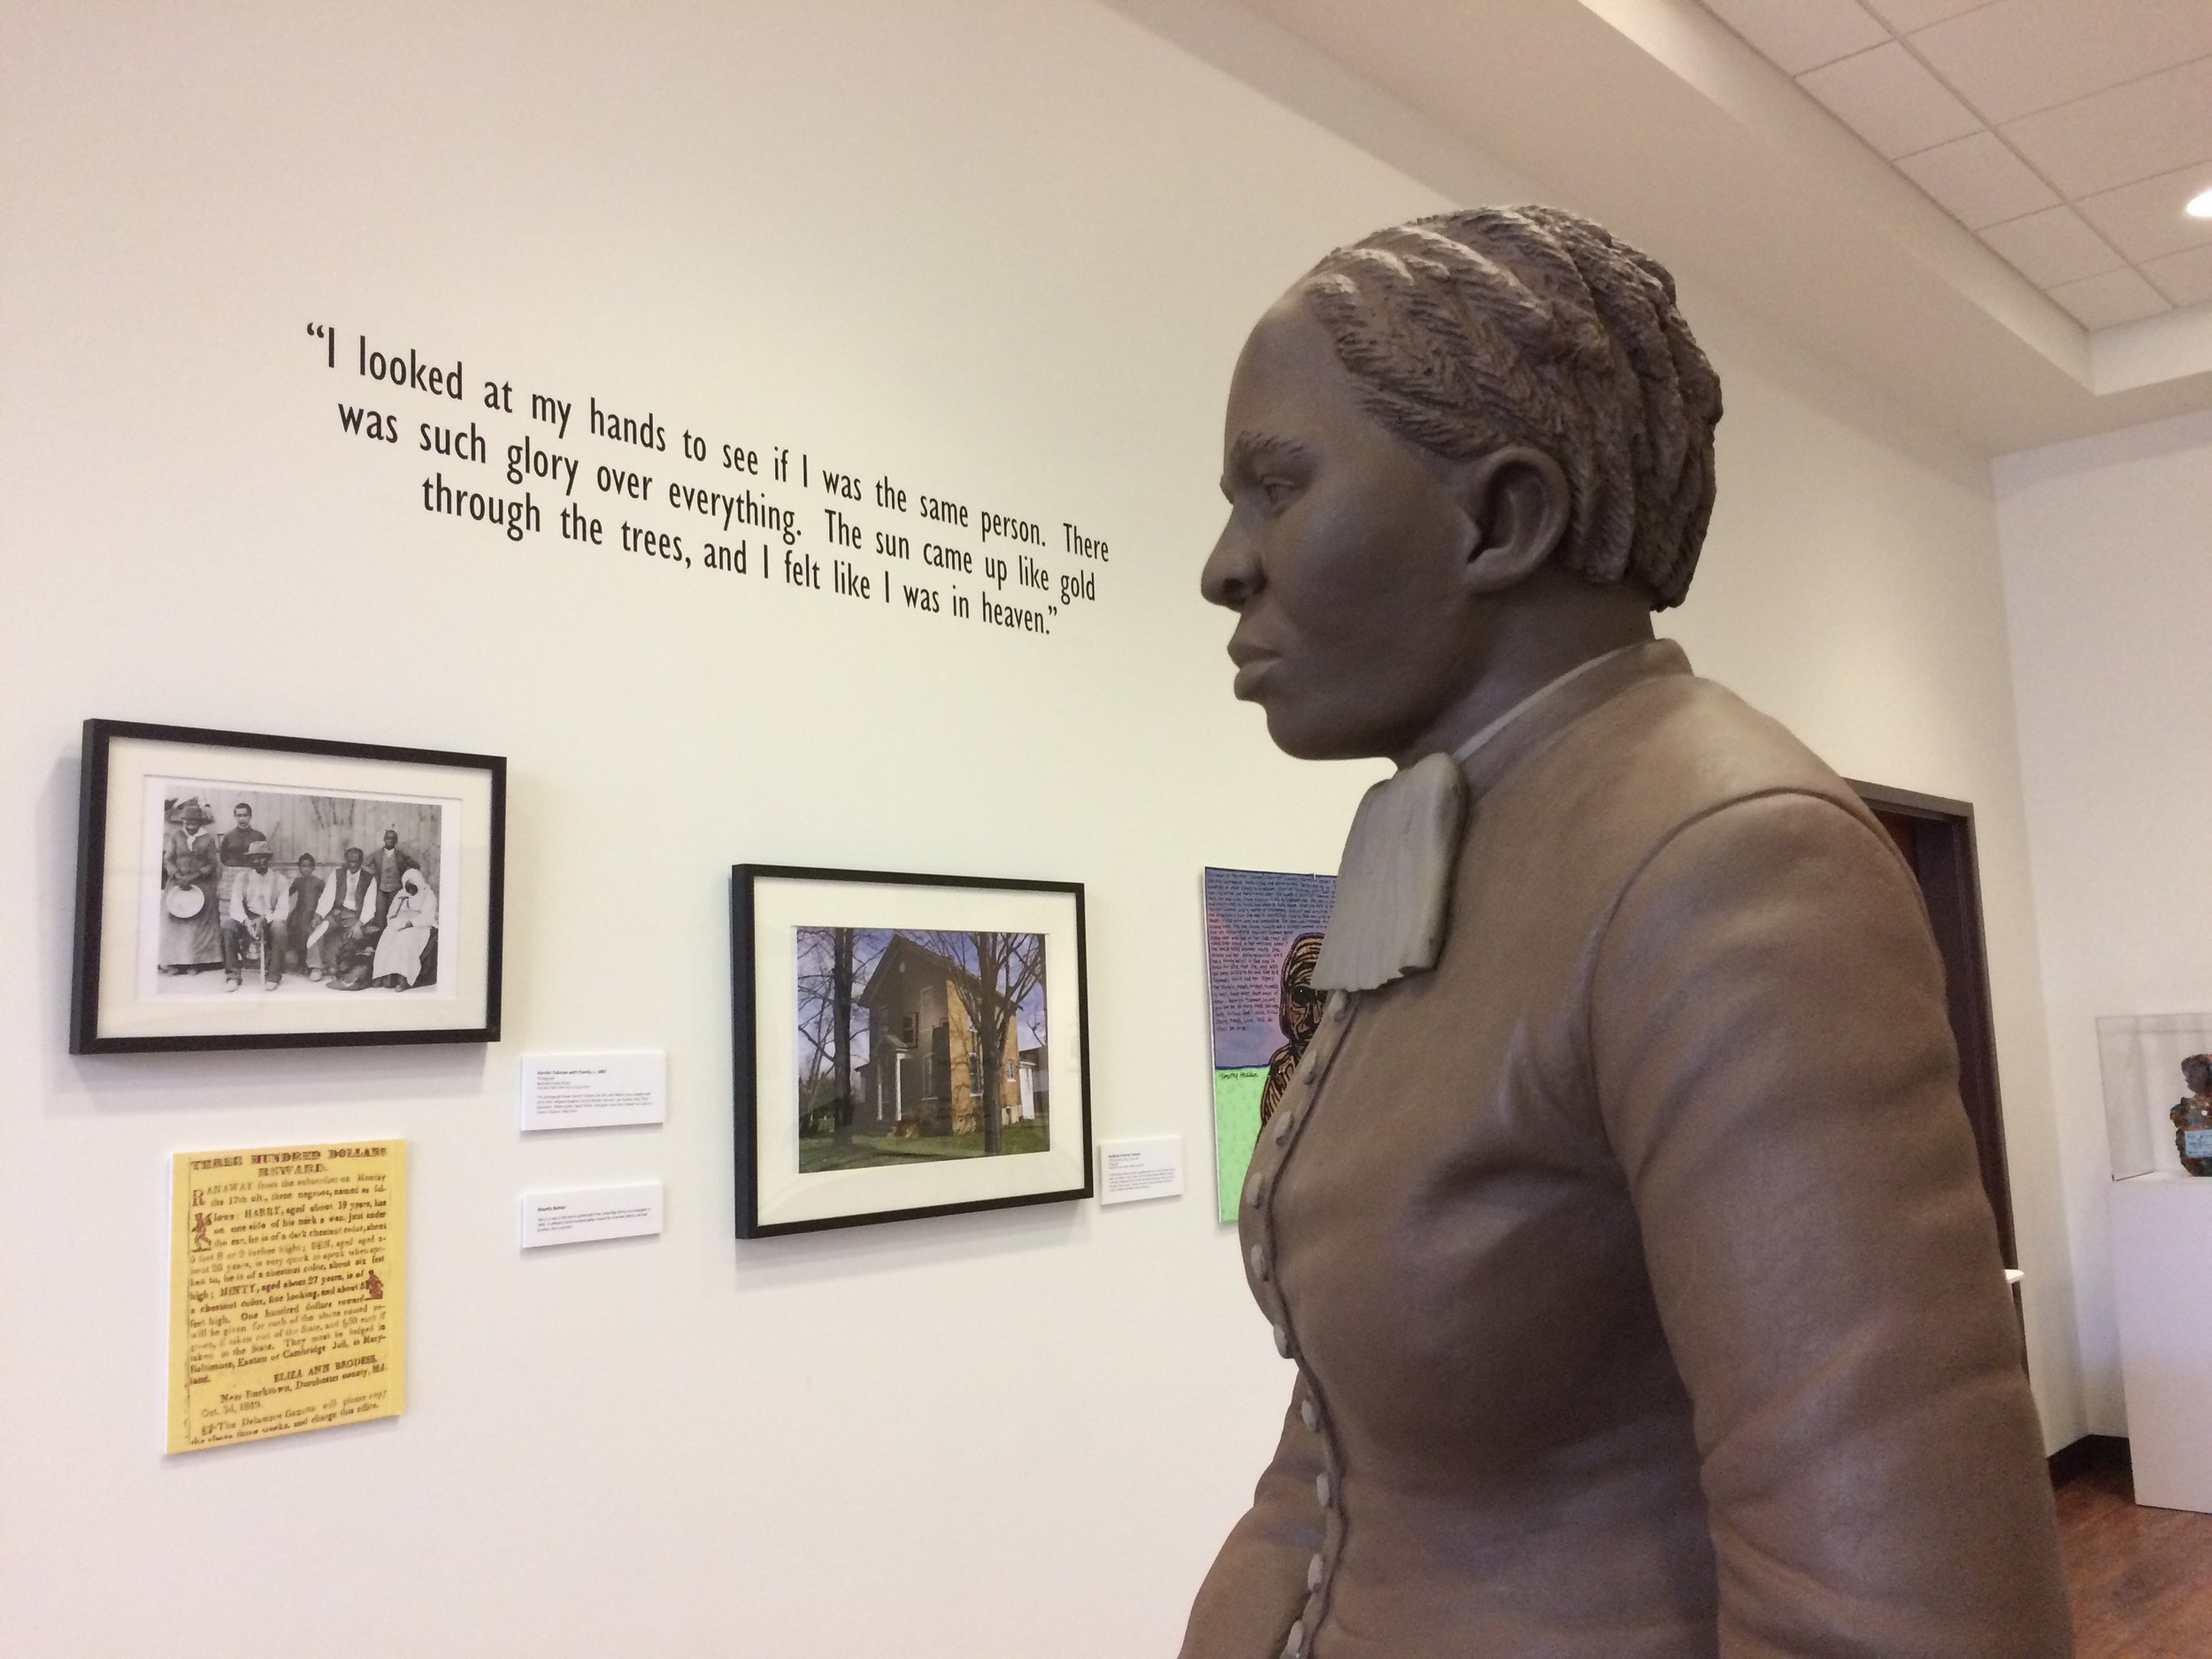 Stopped on the way home in Macon to visit the Tubman Museum.